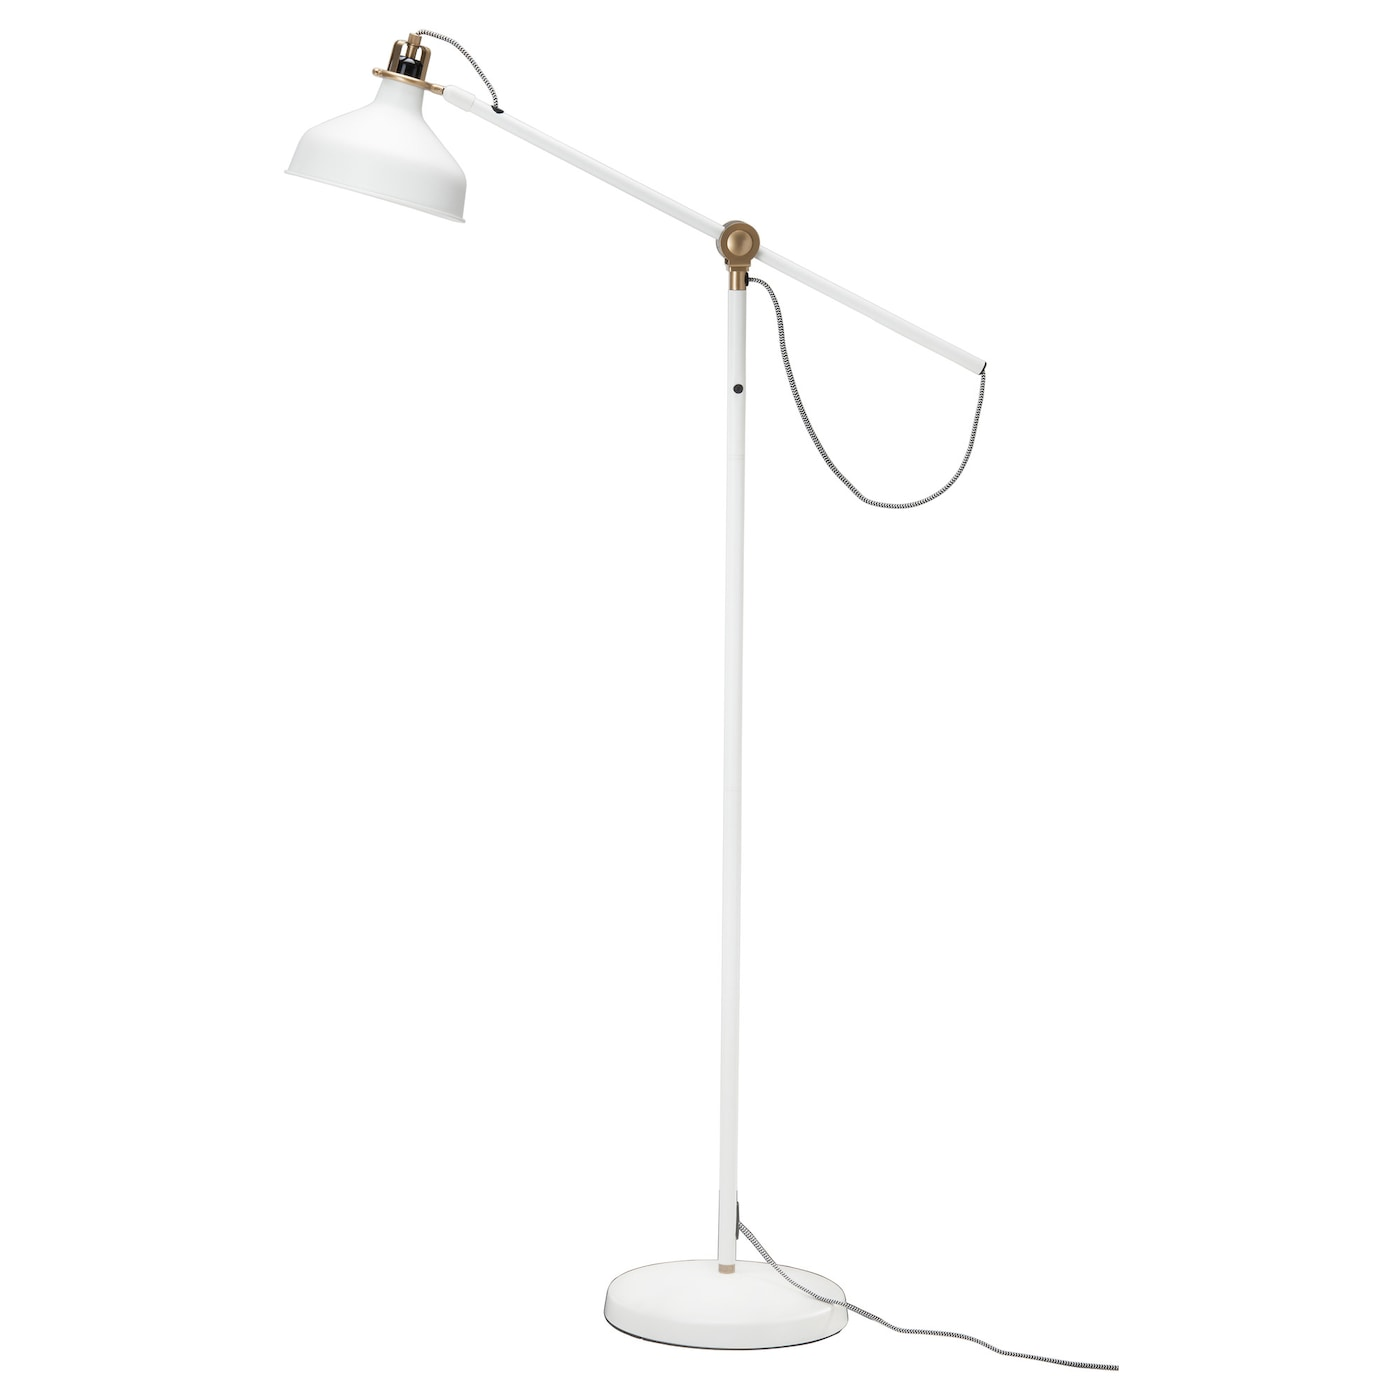 IKEA RANARP floor/reading lamp Provides a directed light that is great for reading.